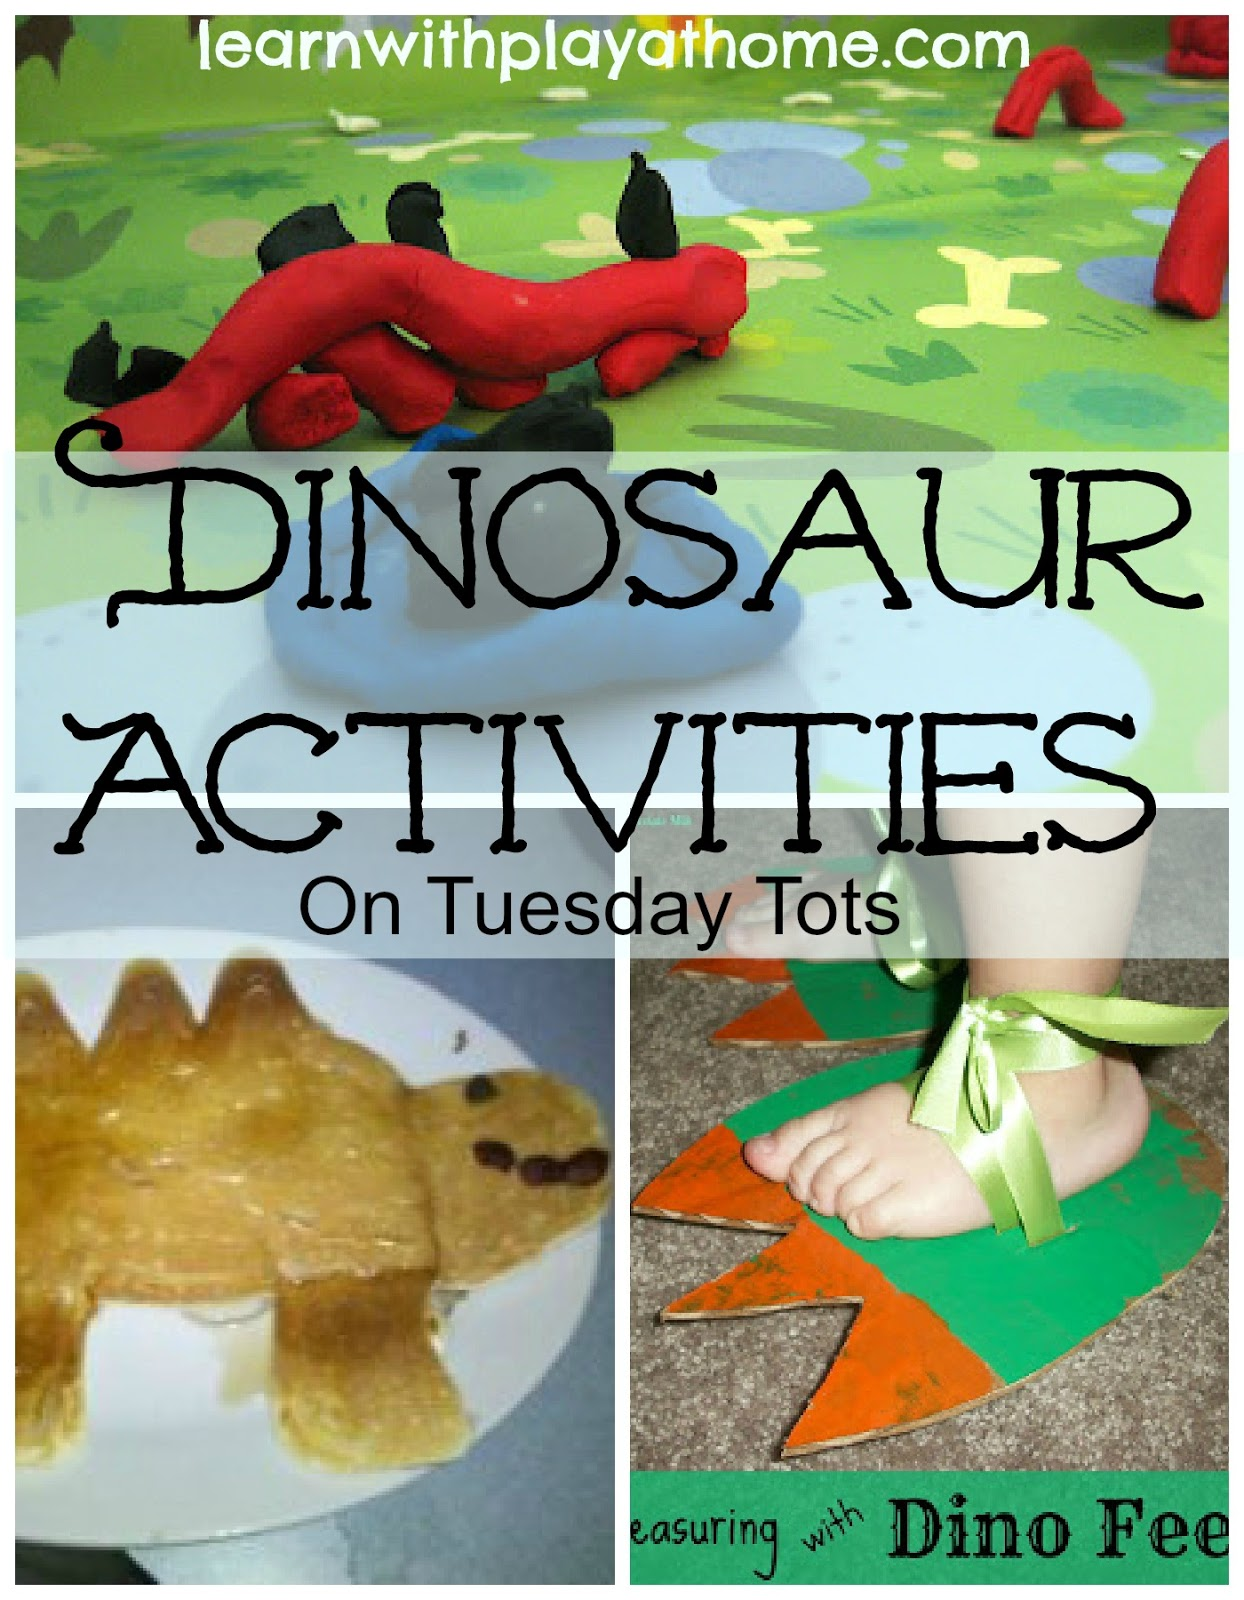 Learn With Play At Home Dinosaur Activities On Tuesday Tots